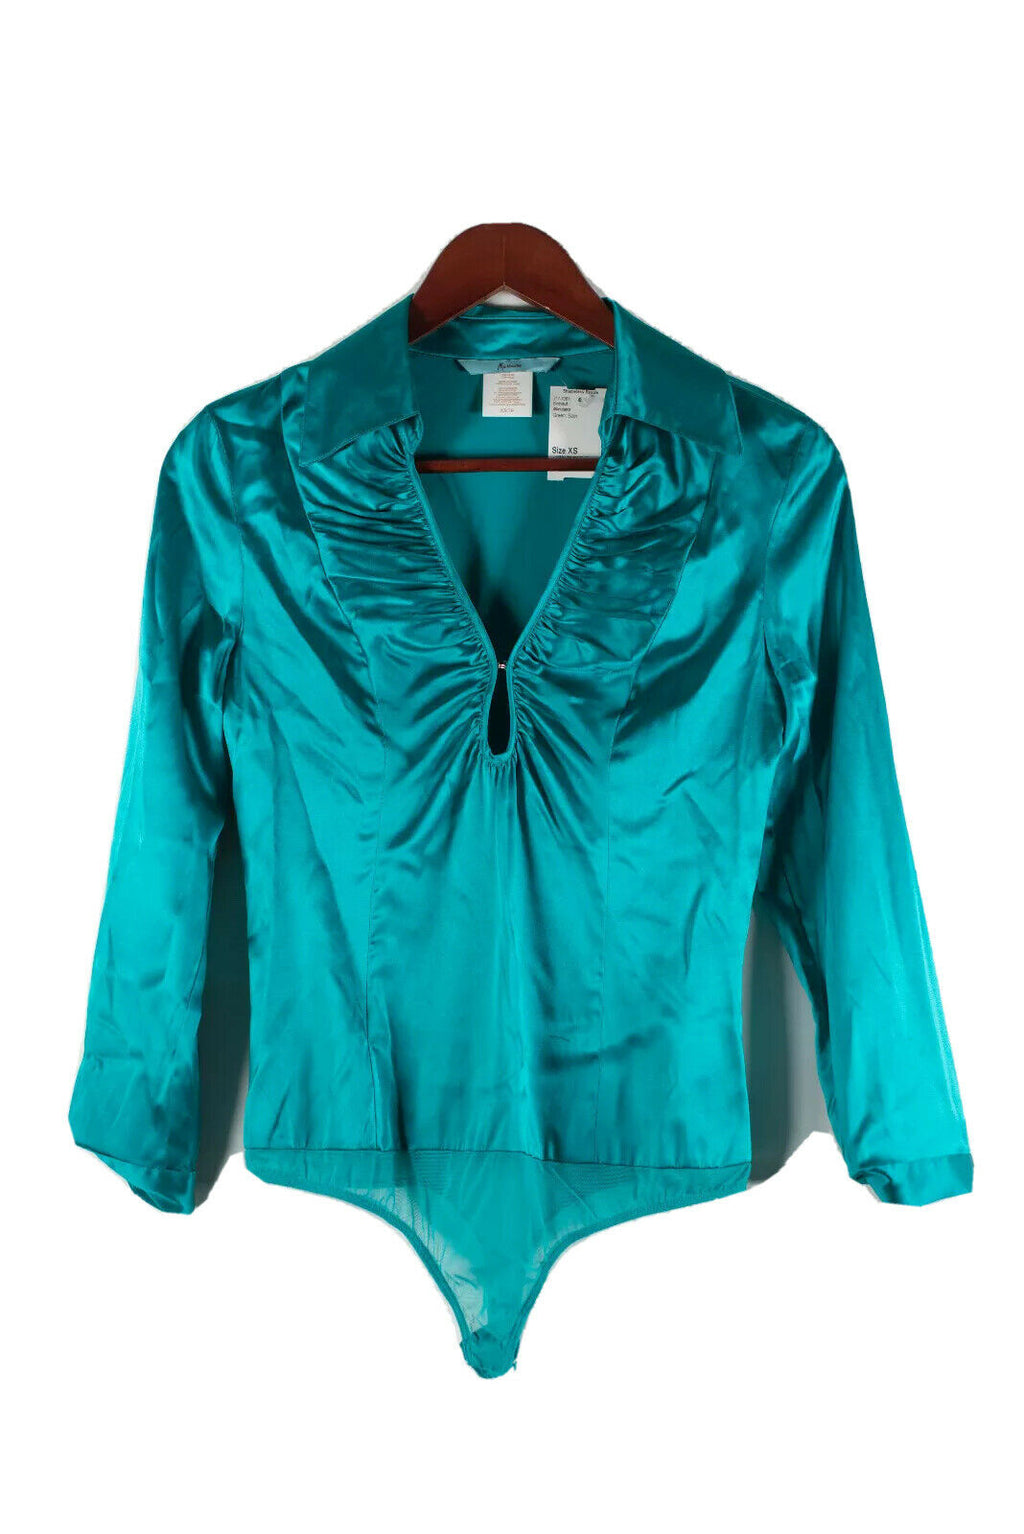 Marciano Women Size XS Teal Green Bodysuit Silk Top